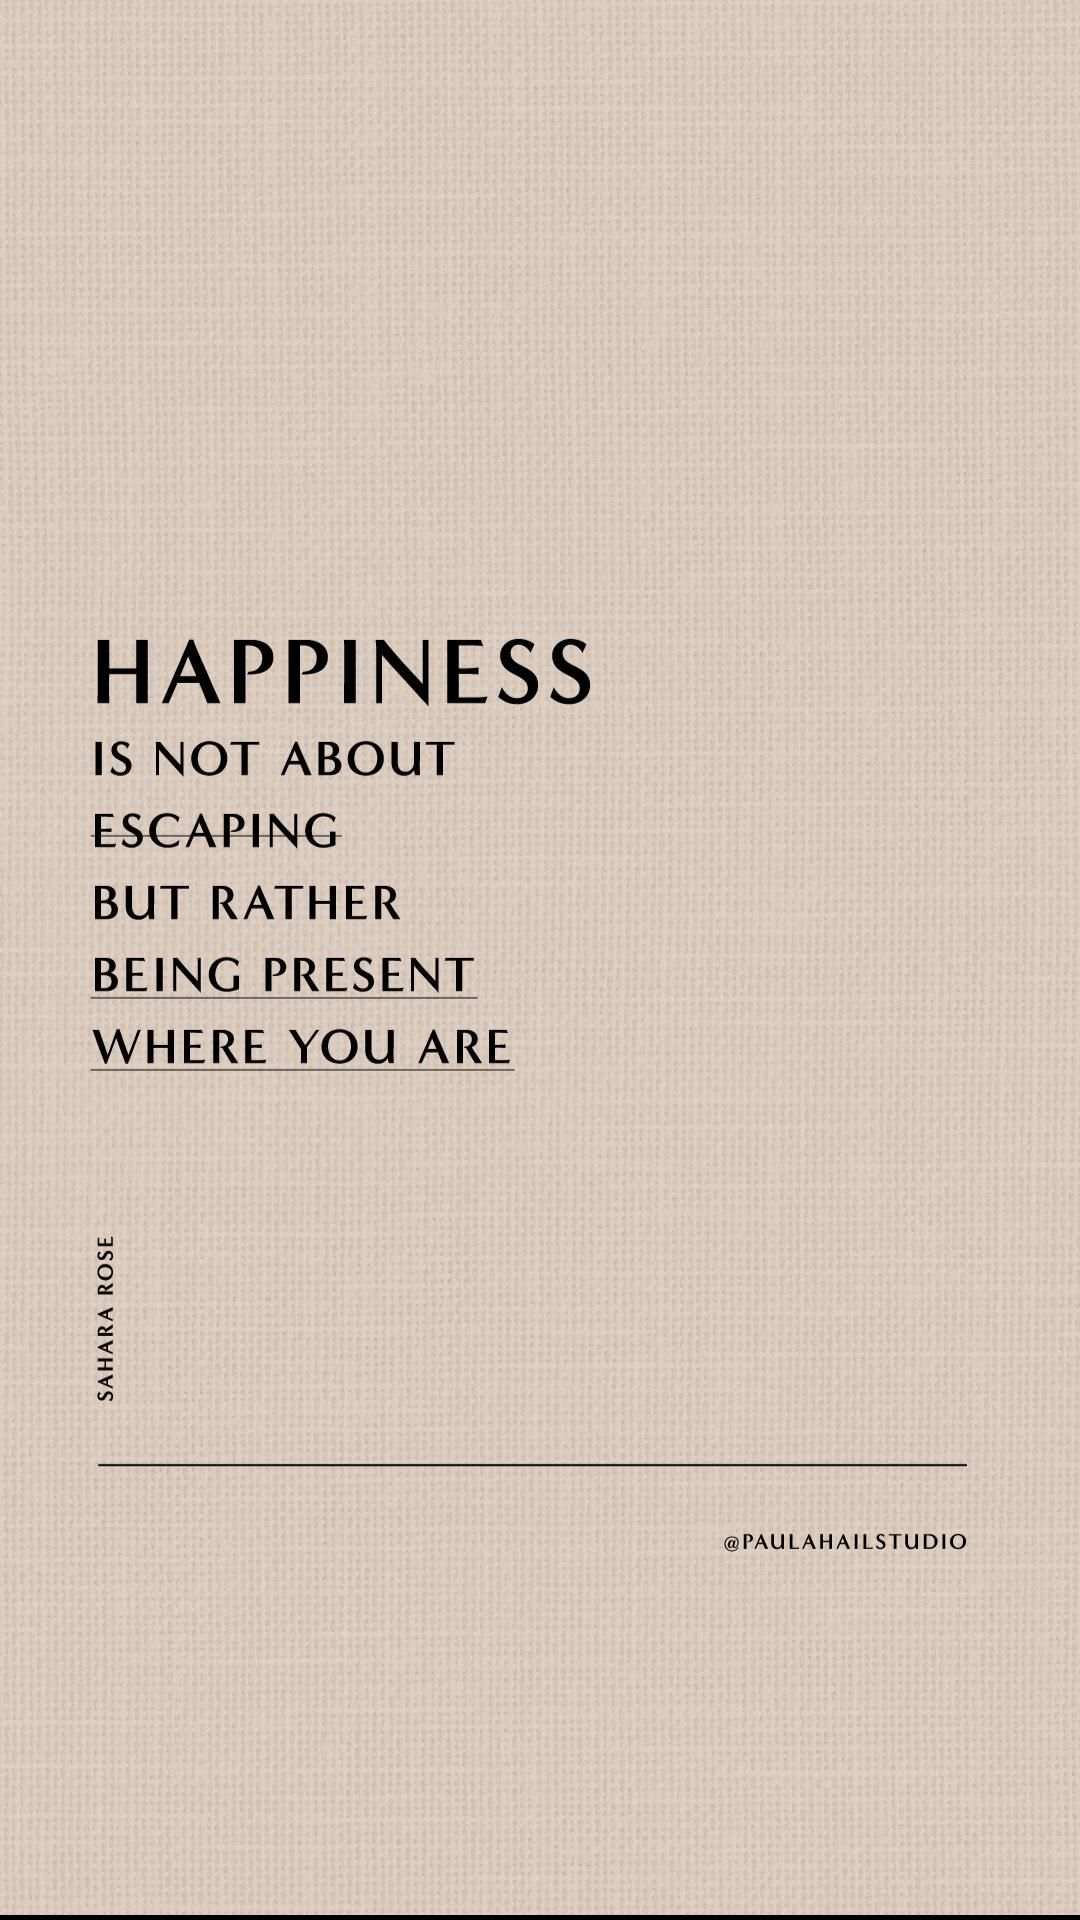 Save it ⊶ Happiness is being present where you are ⊶ Inspirational quotes & affirmations